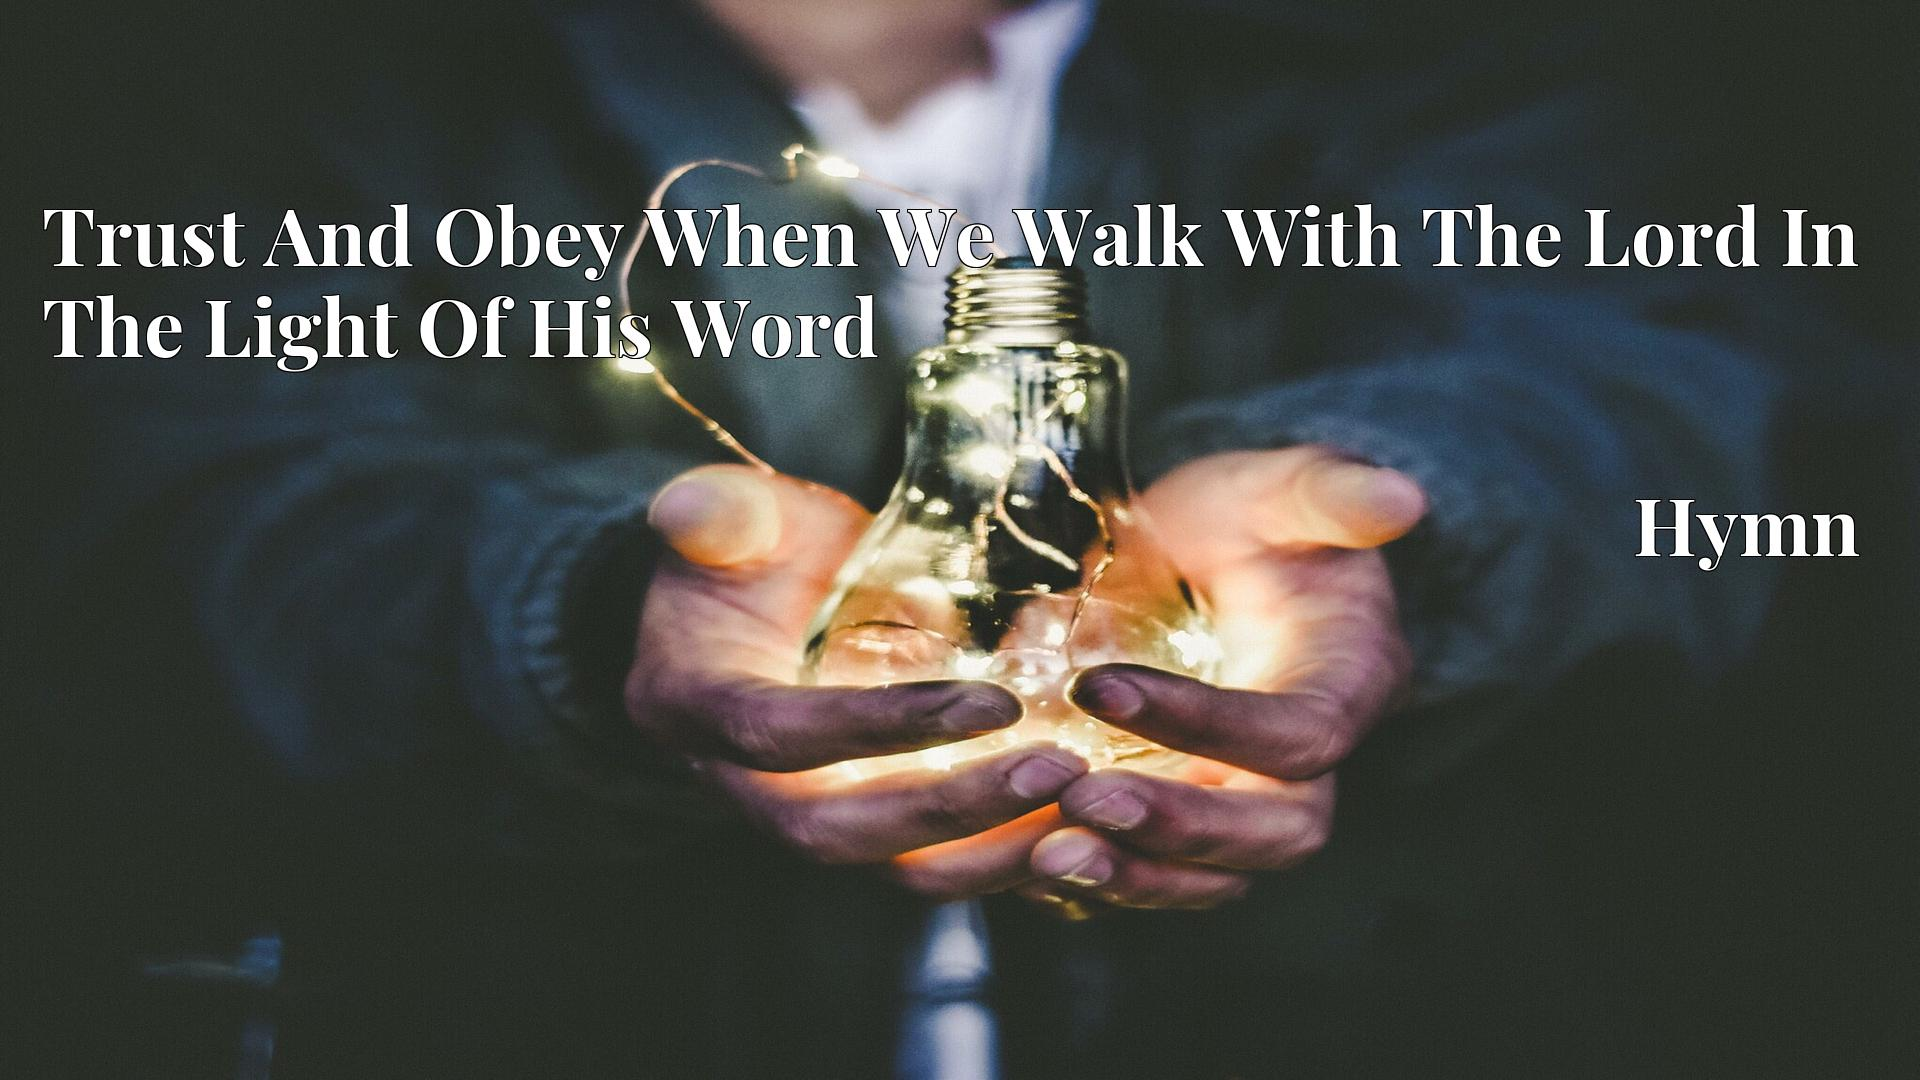 Trust And Obey When We Walk With The Lord In The Light Of His Word - Hymn